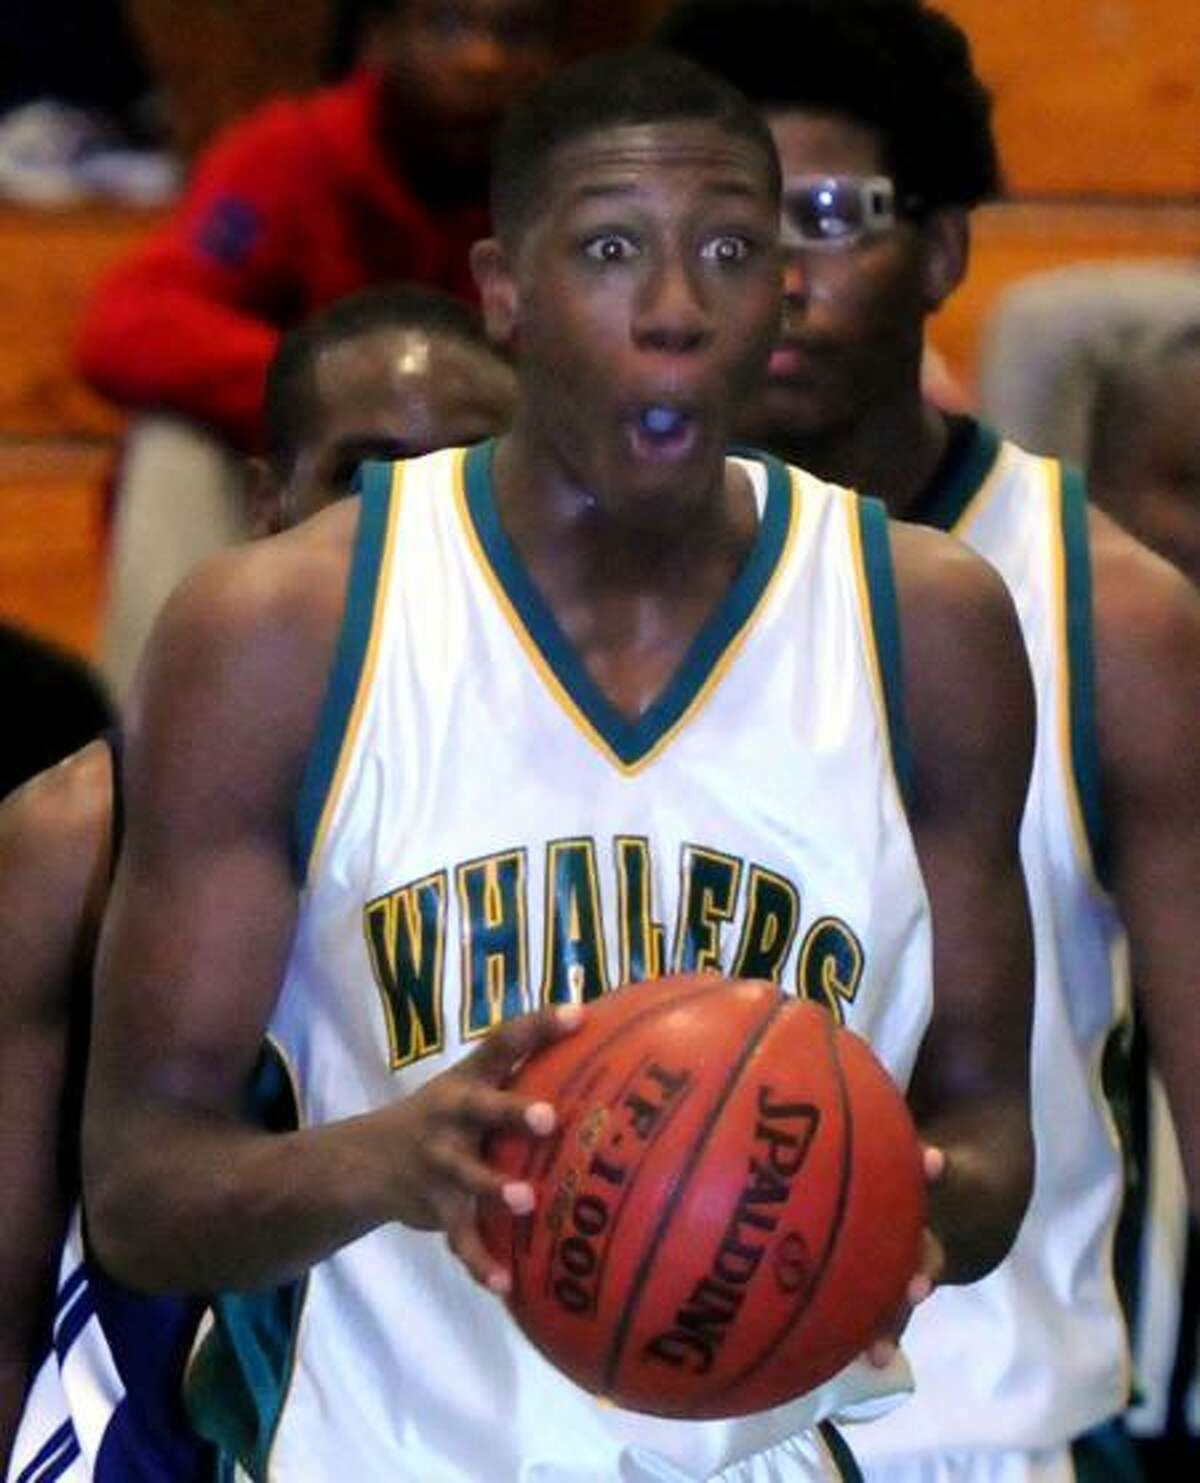 37th annual Doc Hurley Scholarship Basketball Classic, Weaver HS, Hartford. New London's Kris Dunn reacts to a traveling call on him. Photo by Mara Lavitt/New Haven Register12/17/11